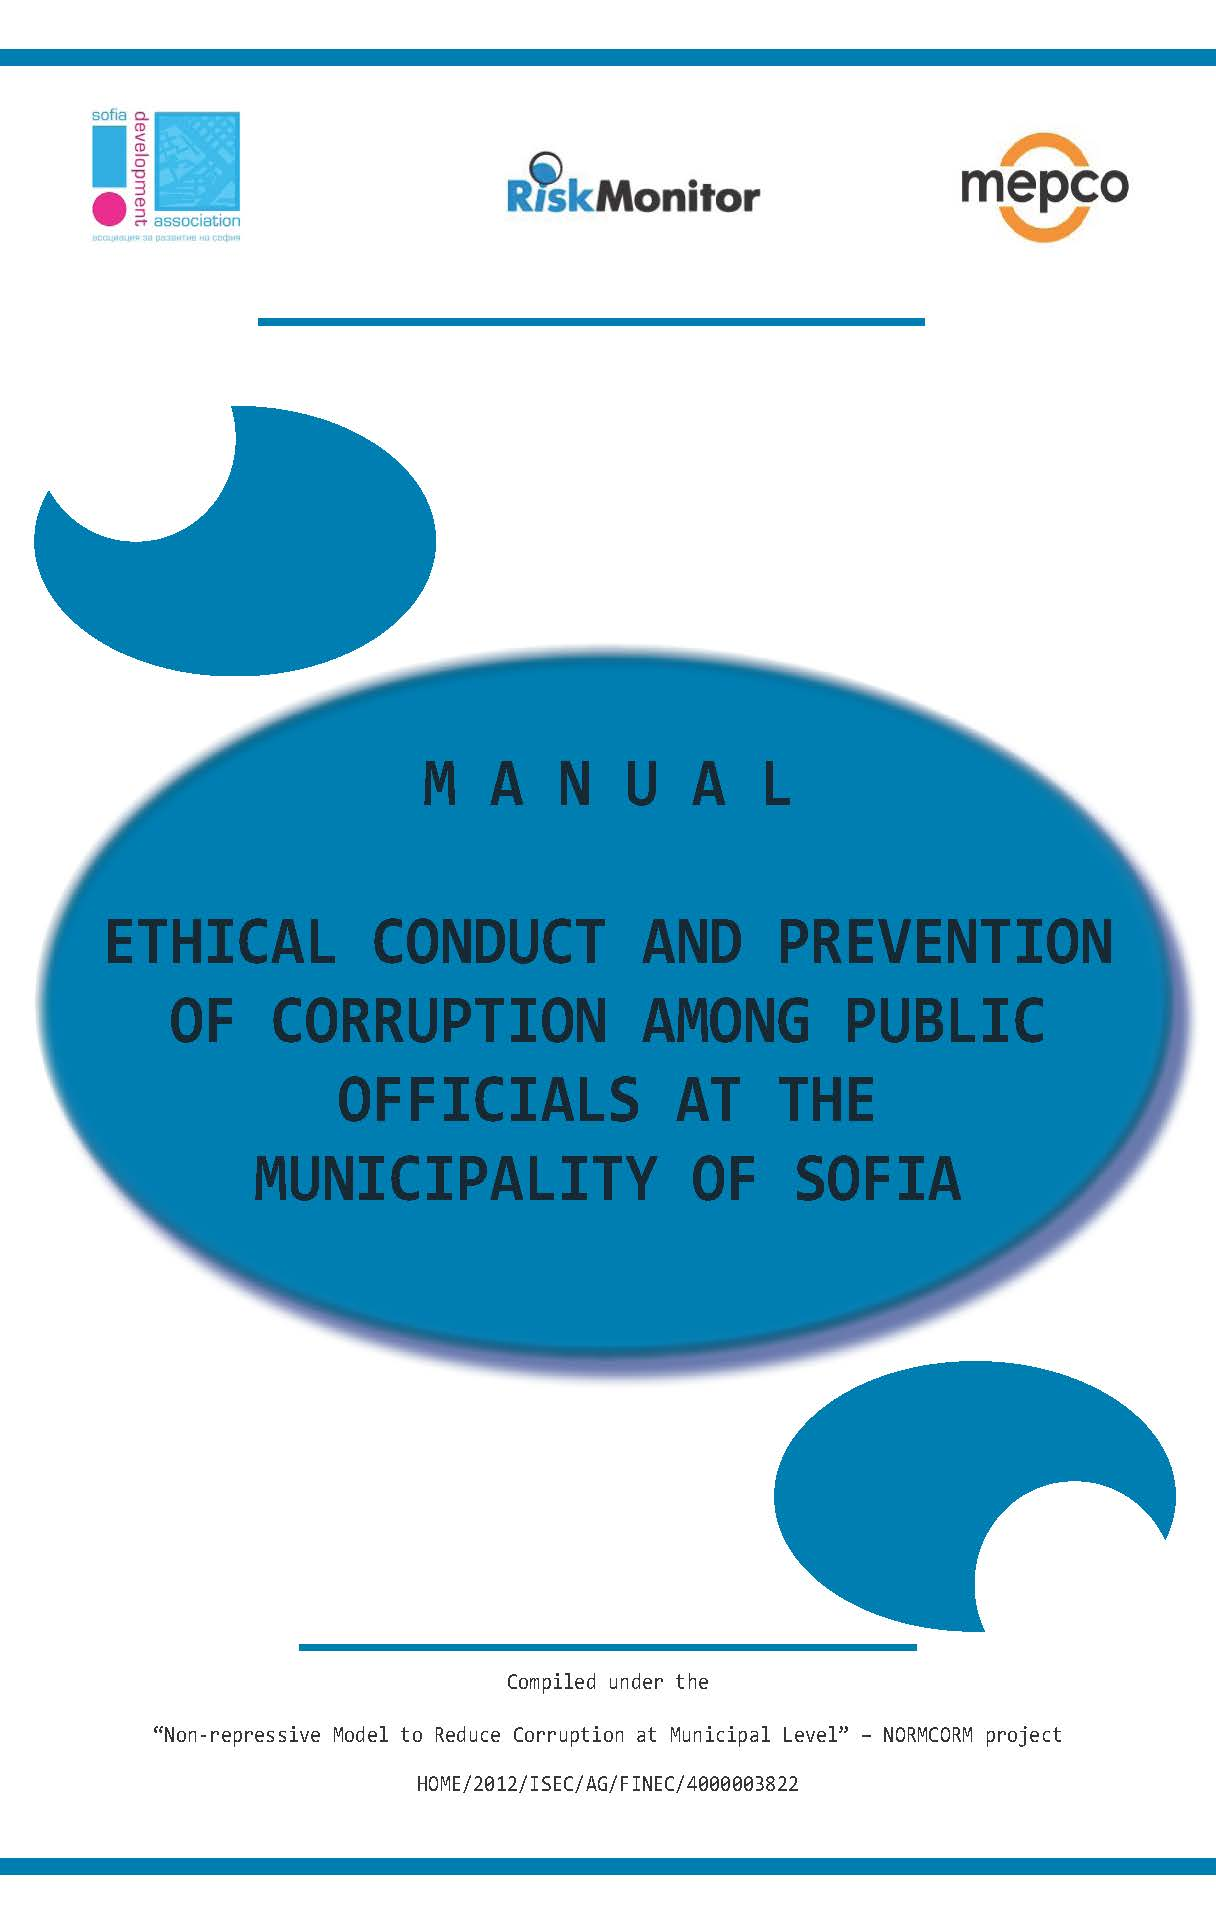 Manual Ethical Conduct And Prevention Of Corruption Among Public Officials At The Municipality Of Sofia